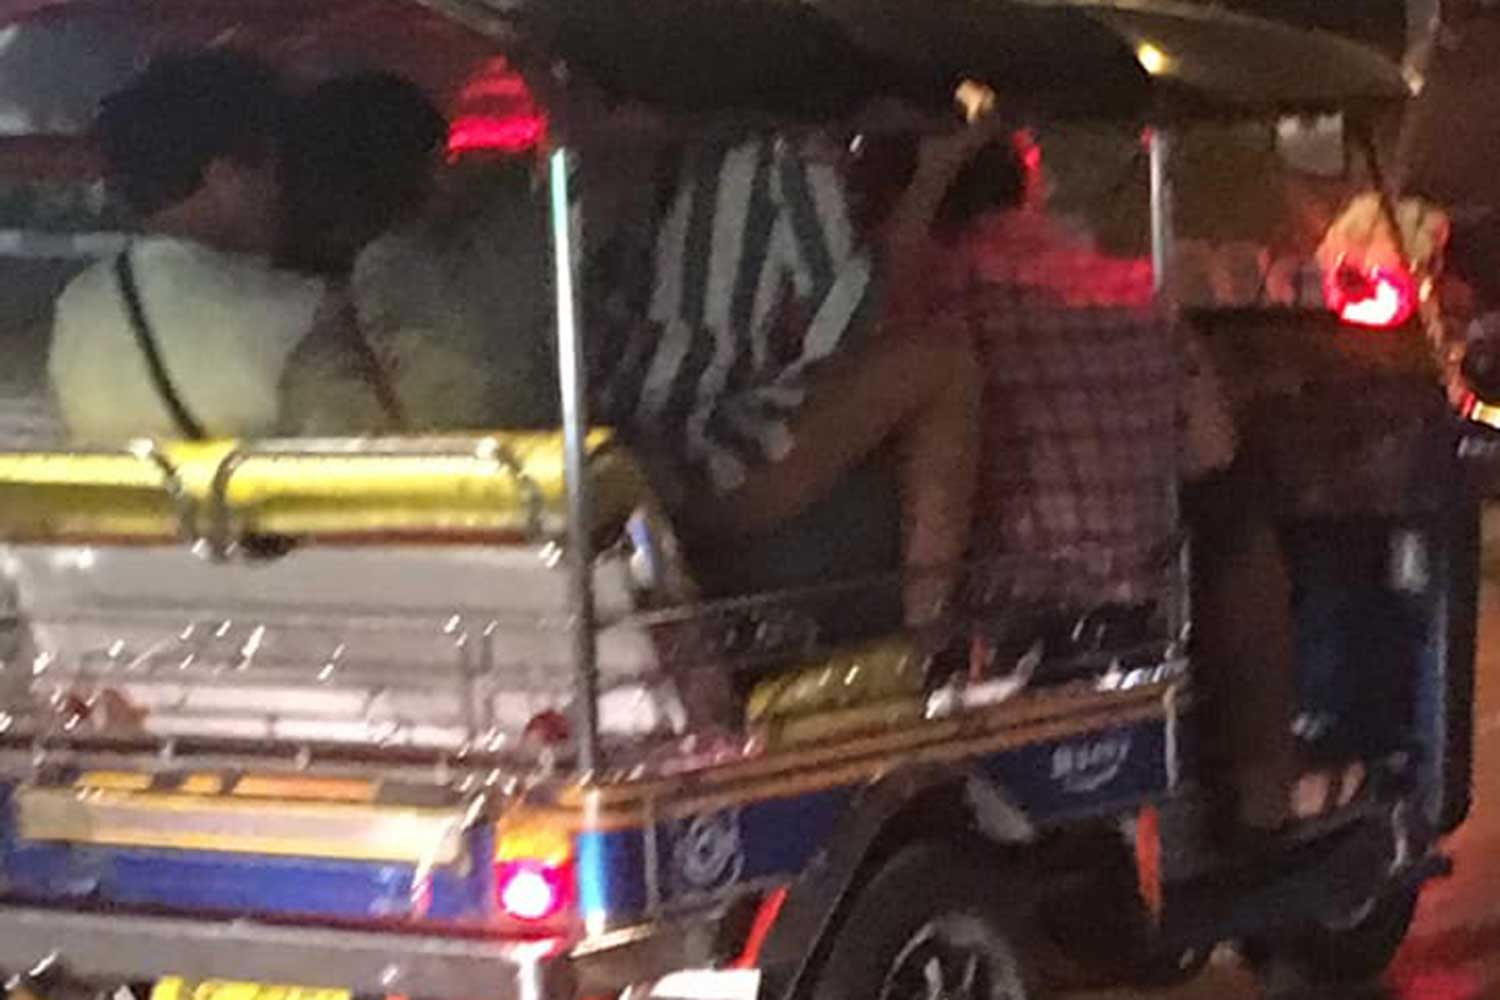 This woman seen sitting on the lap of a male passenger in a tuk-tuk on a Bangkok street and apparently having sex with him drew a storm of criticism online after the two video clips went viral. (Photo taken from Khun-Khachen Facebook page)